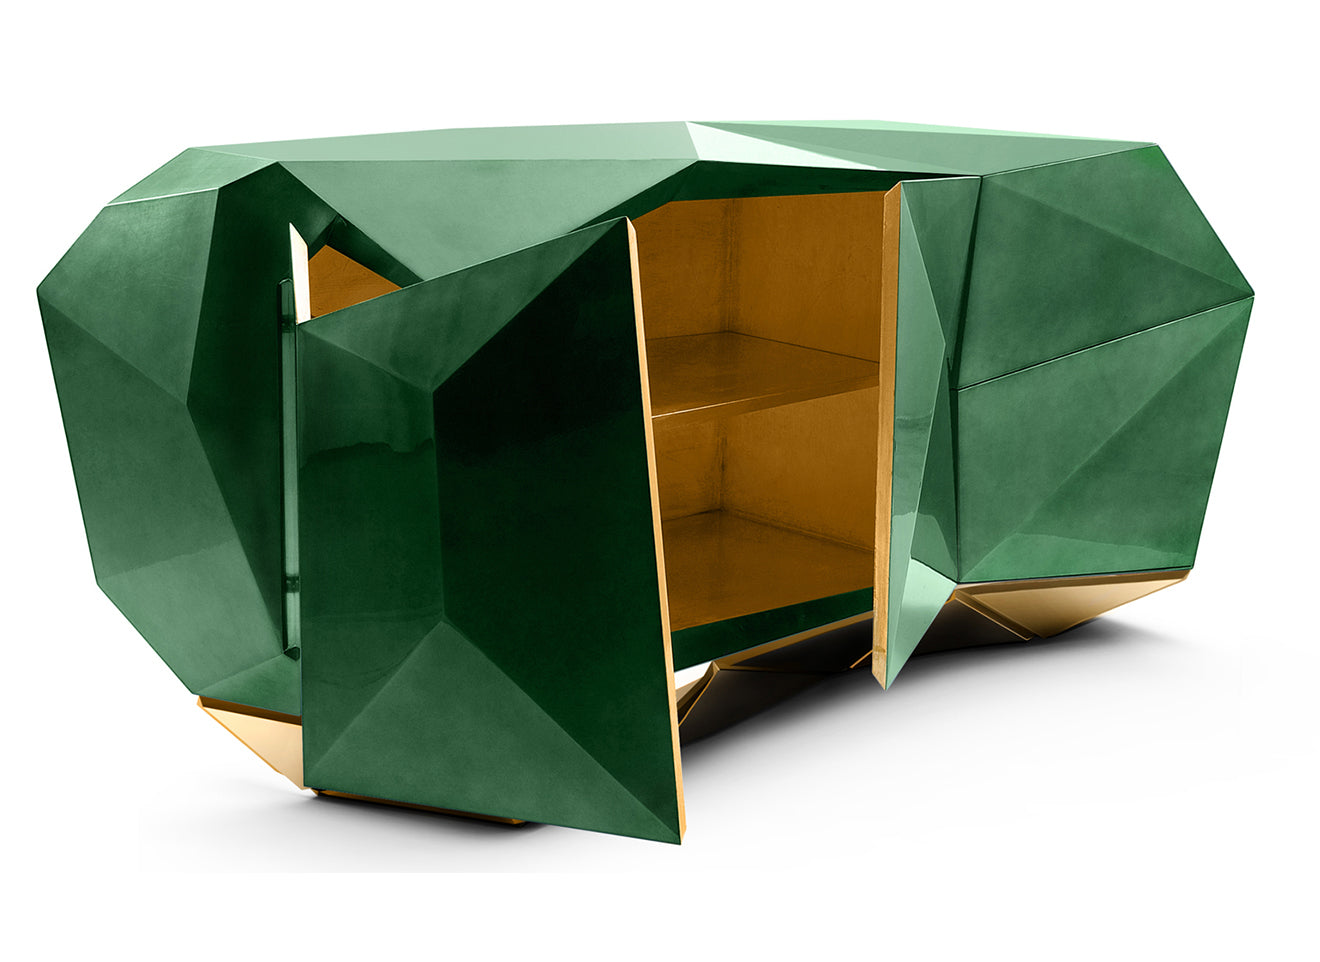 Green diamond sideboard from Boca Do Lobo